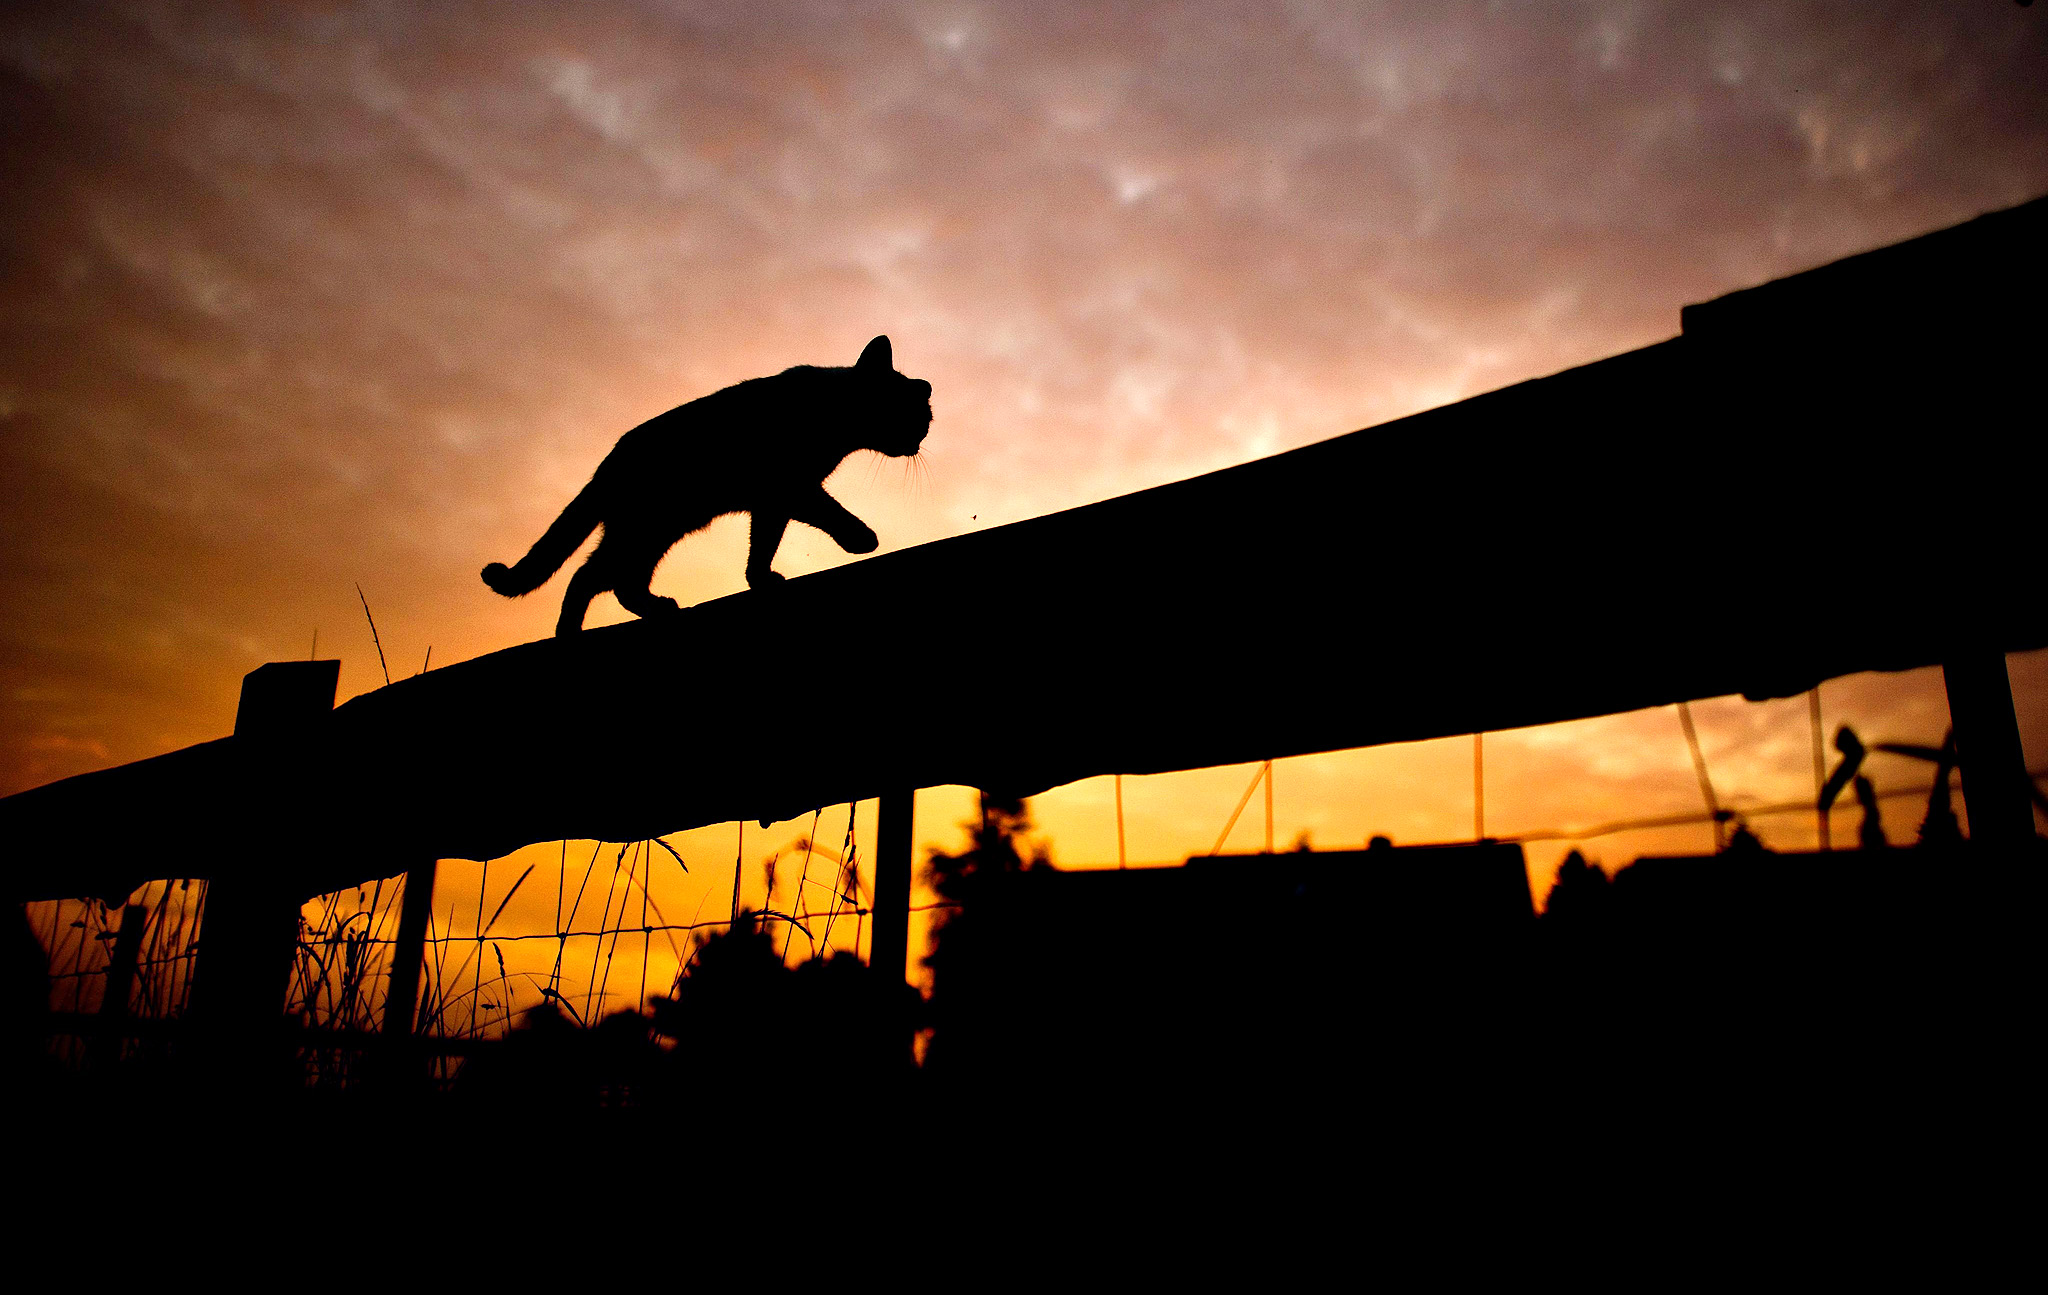 The silhouette of a cat walking on top of a fence stands out against the sky during sunrise near Sehnde, Germany on Tuesday. Indian summer, or Altweibersommer (old womens summer) in German, is a weather phenomenon which often brings sunny weather between mid-September and the start of October in parts of central Europe.